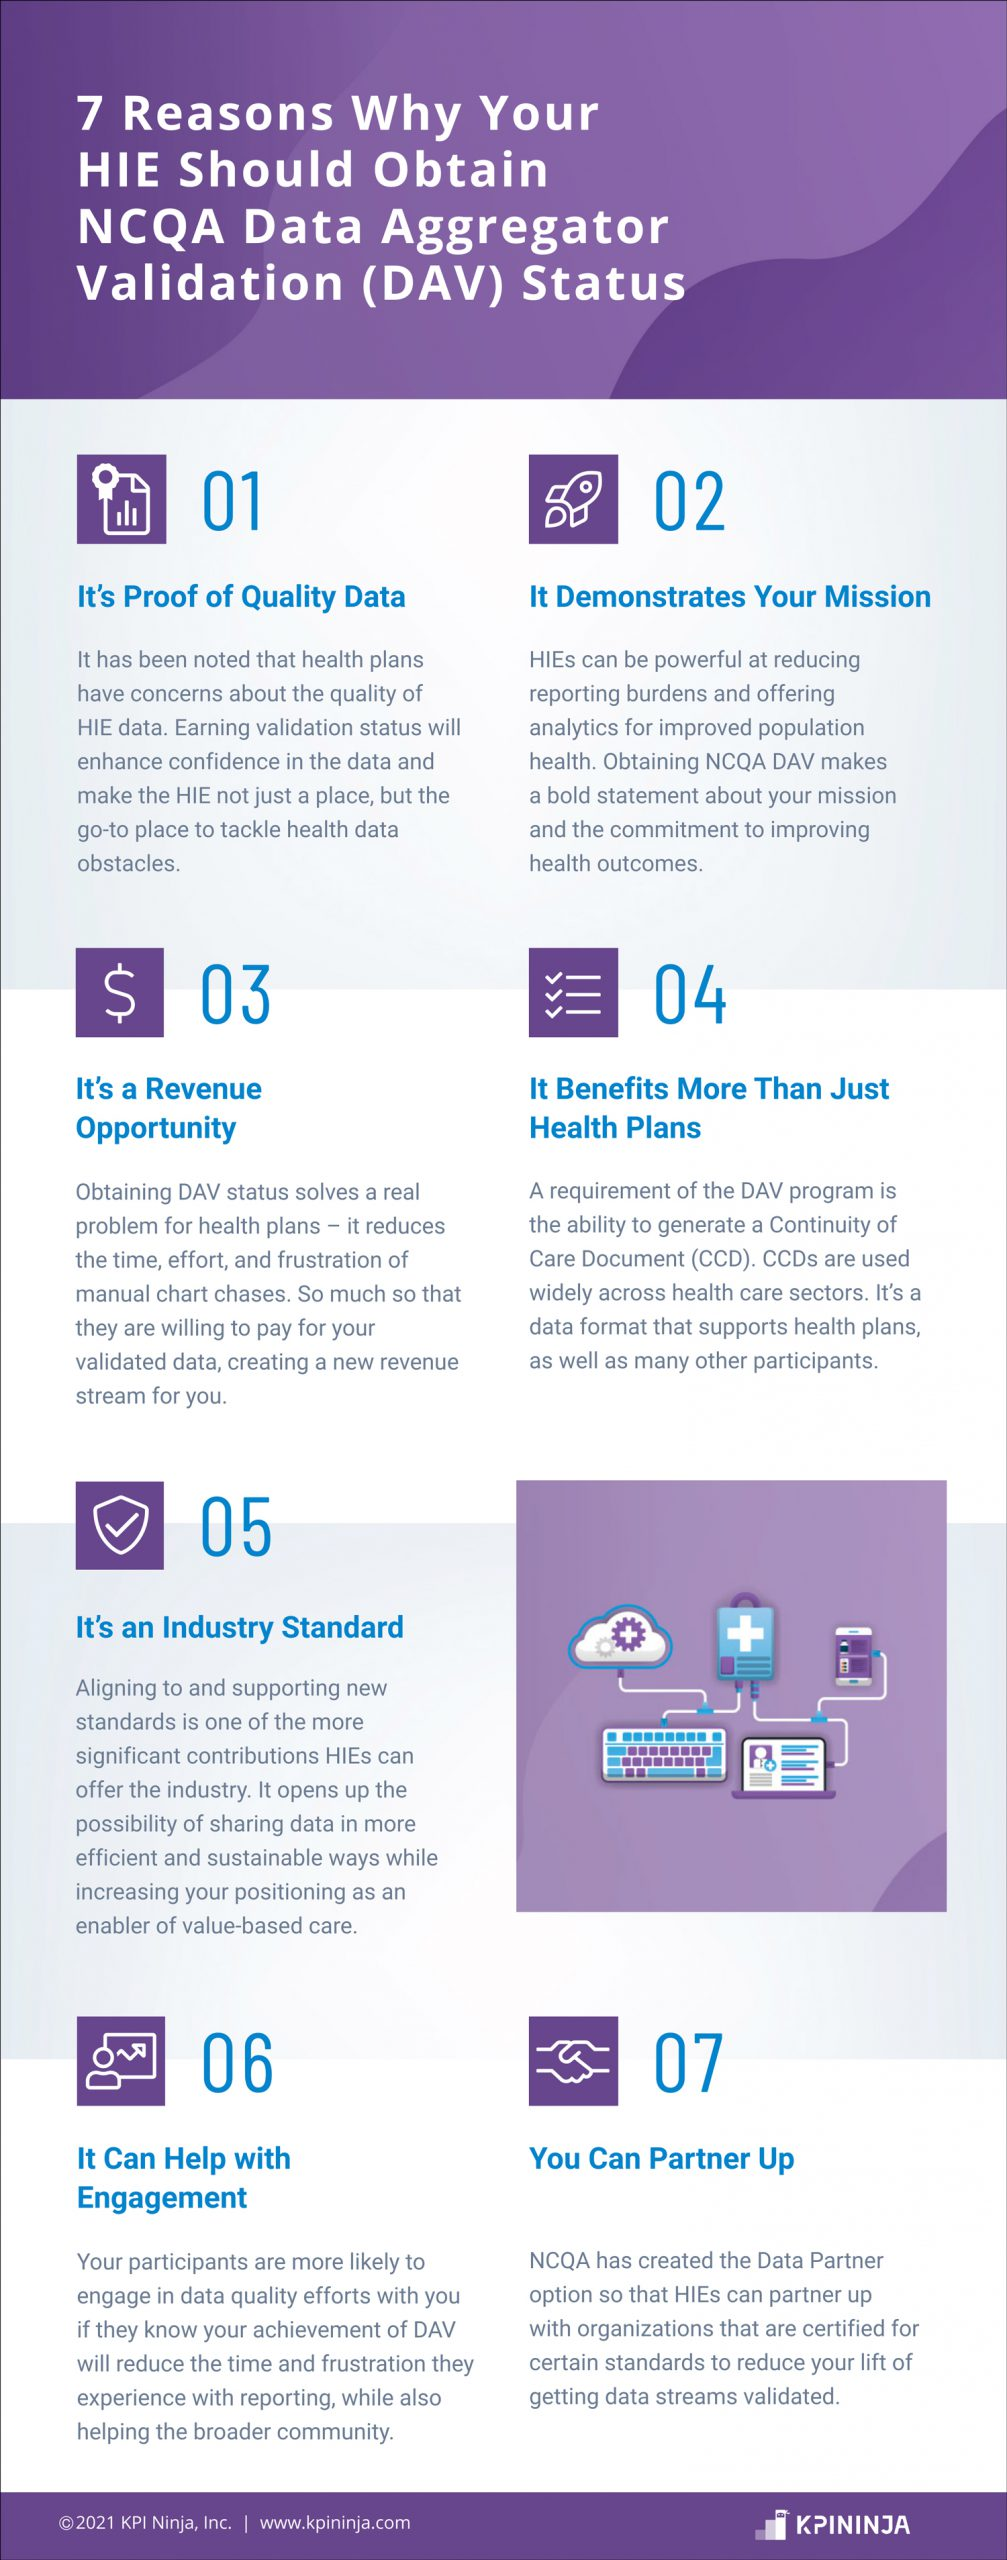 7 Reasons Why Your HIE Should Obtain NCQA Data Aggregator Validation (DAV) Status | infographic